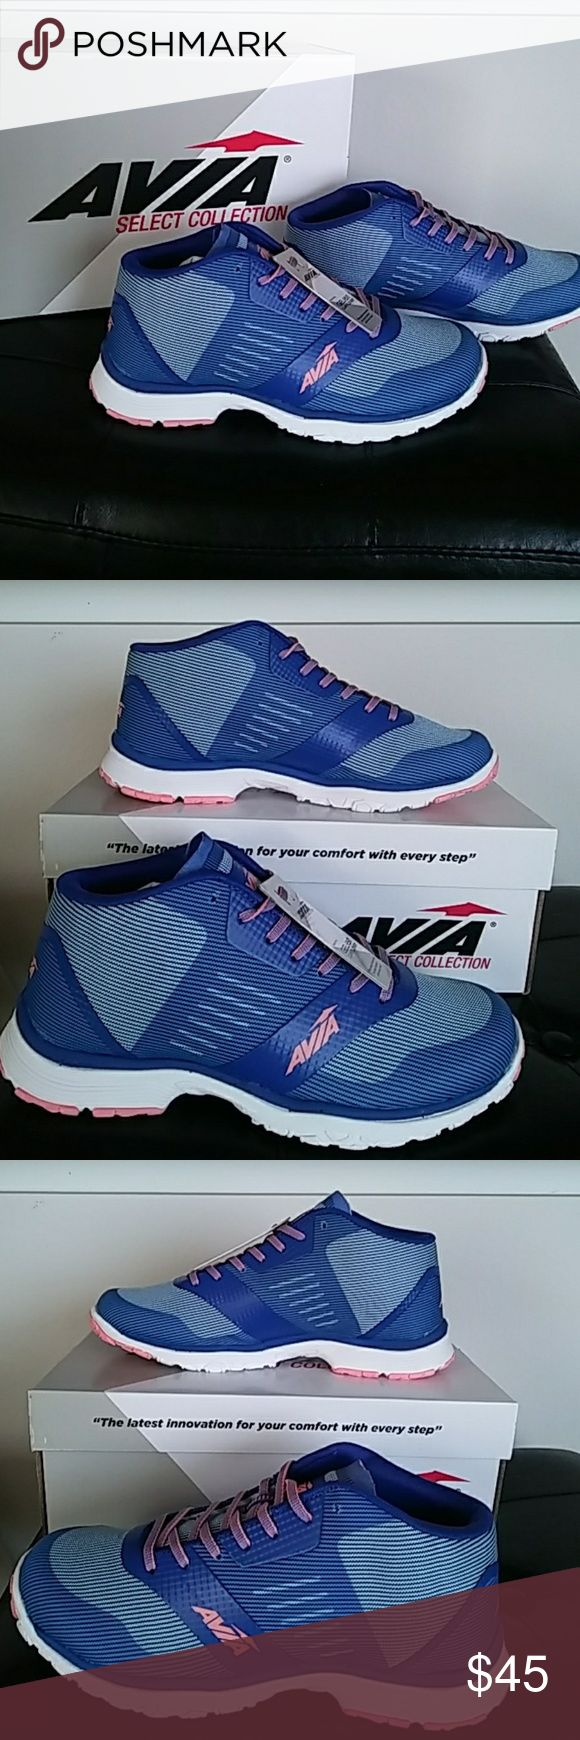 """AVIA ATHLETIC SHOES                           7.5M New in Box. Size 7.5M Avia Athletic shoes designed for running, cross training, walking and basic """"on your feet"""" work outs.  Designed with a special gel foam cantilever technology, these shoes offer the best in comfort, balance, stability and shock absorption. And, they look pretty awesome too! Avia Shoes Athletic Shoes"""